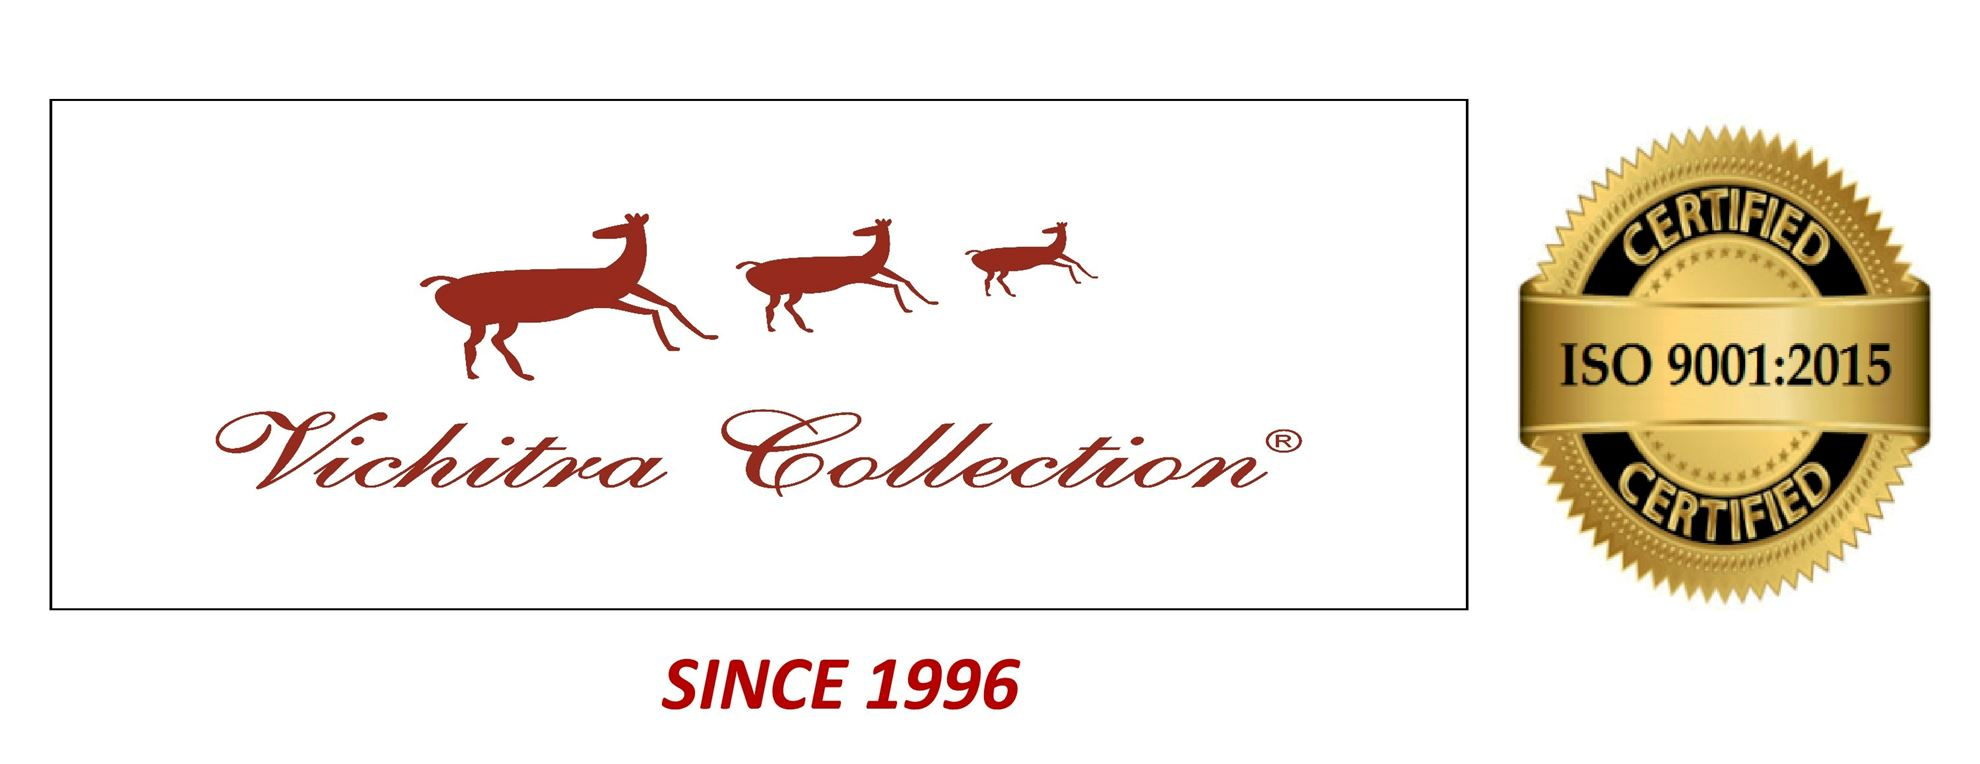 Vichitra Collection